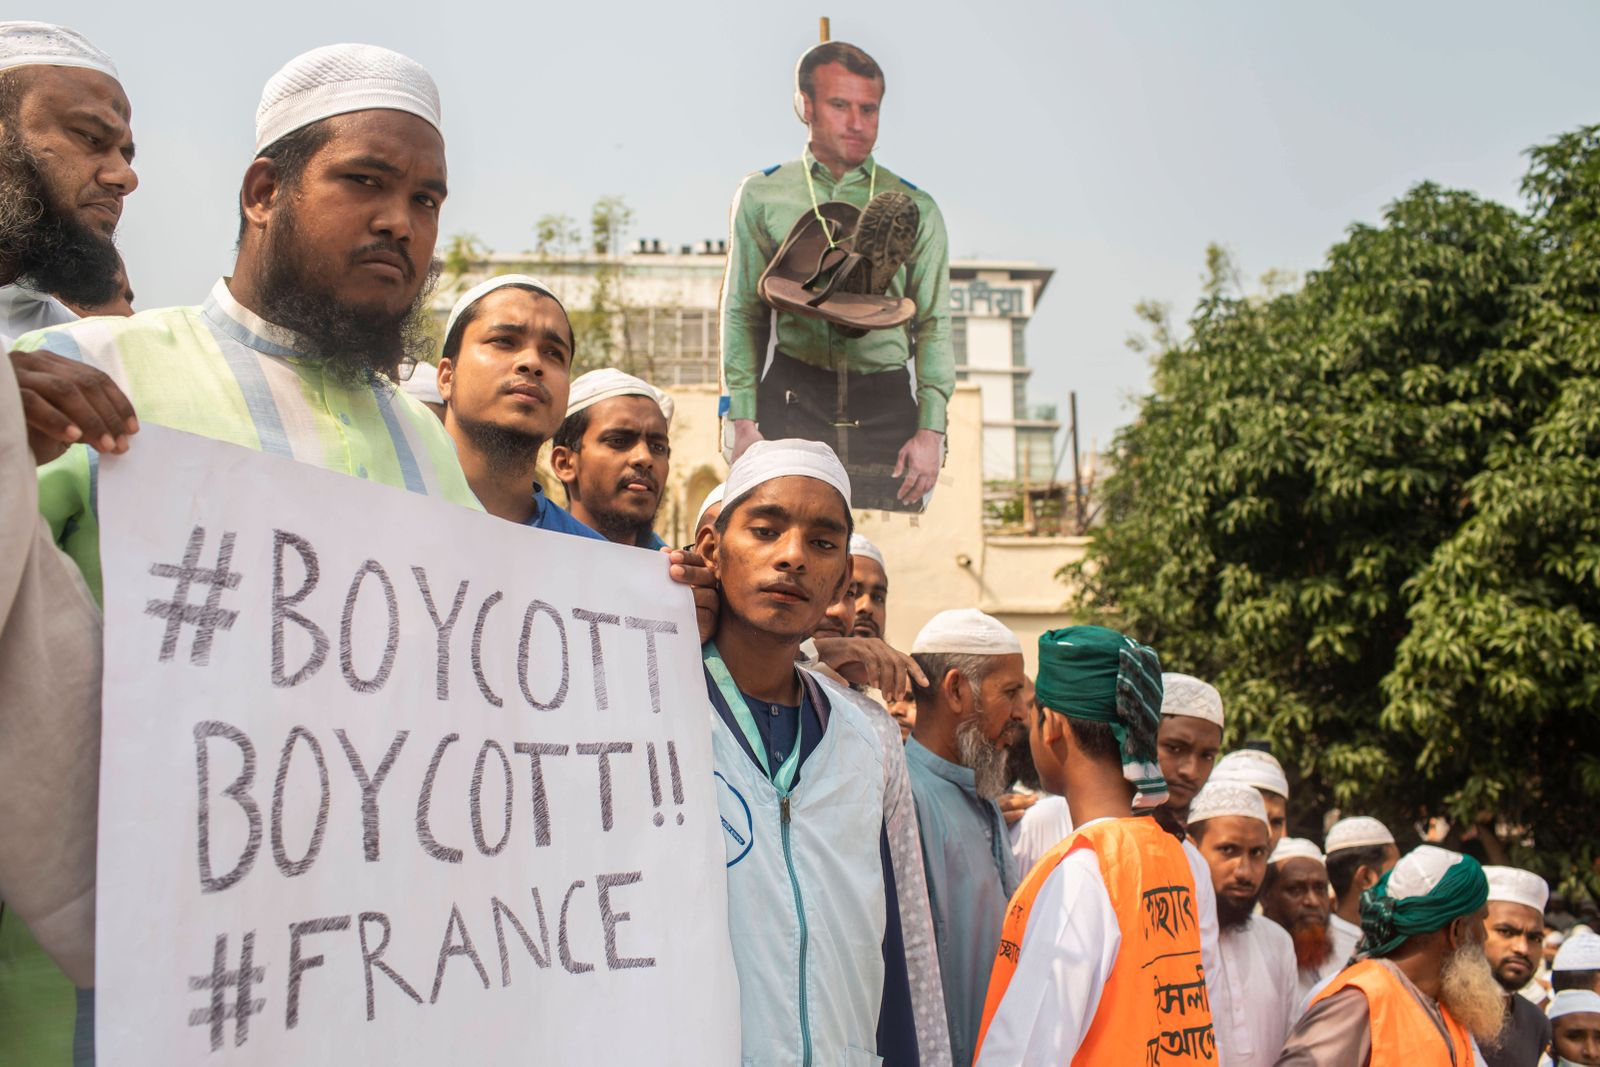 October 27, 2020, Dhaka, Bangladesh: A Muslim protester displays a placard reading Boycott Boycott!! France during the